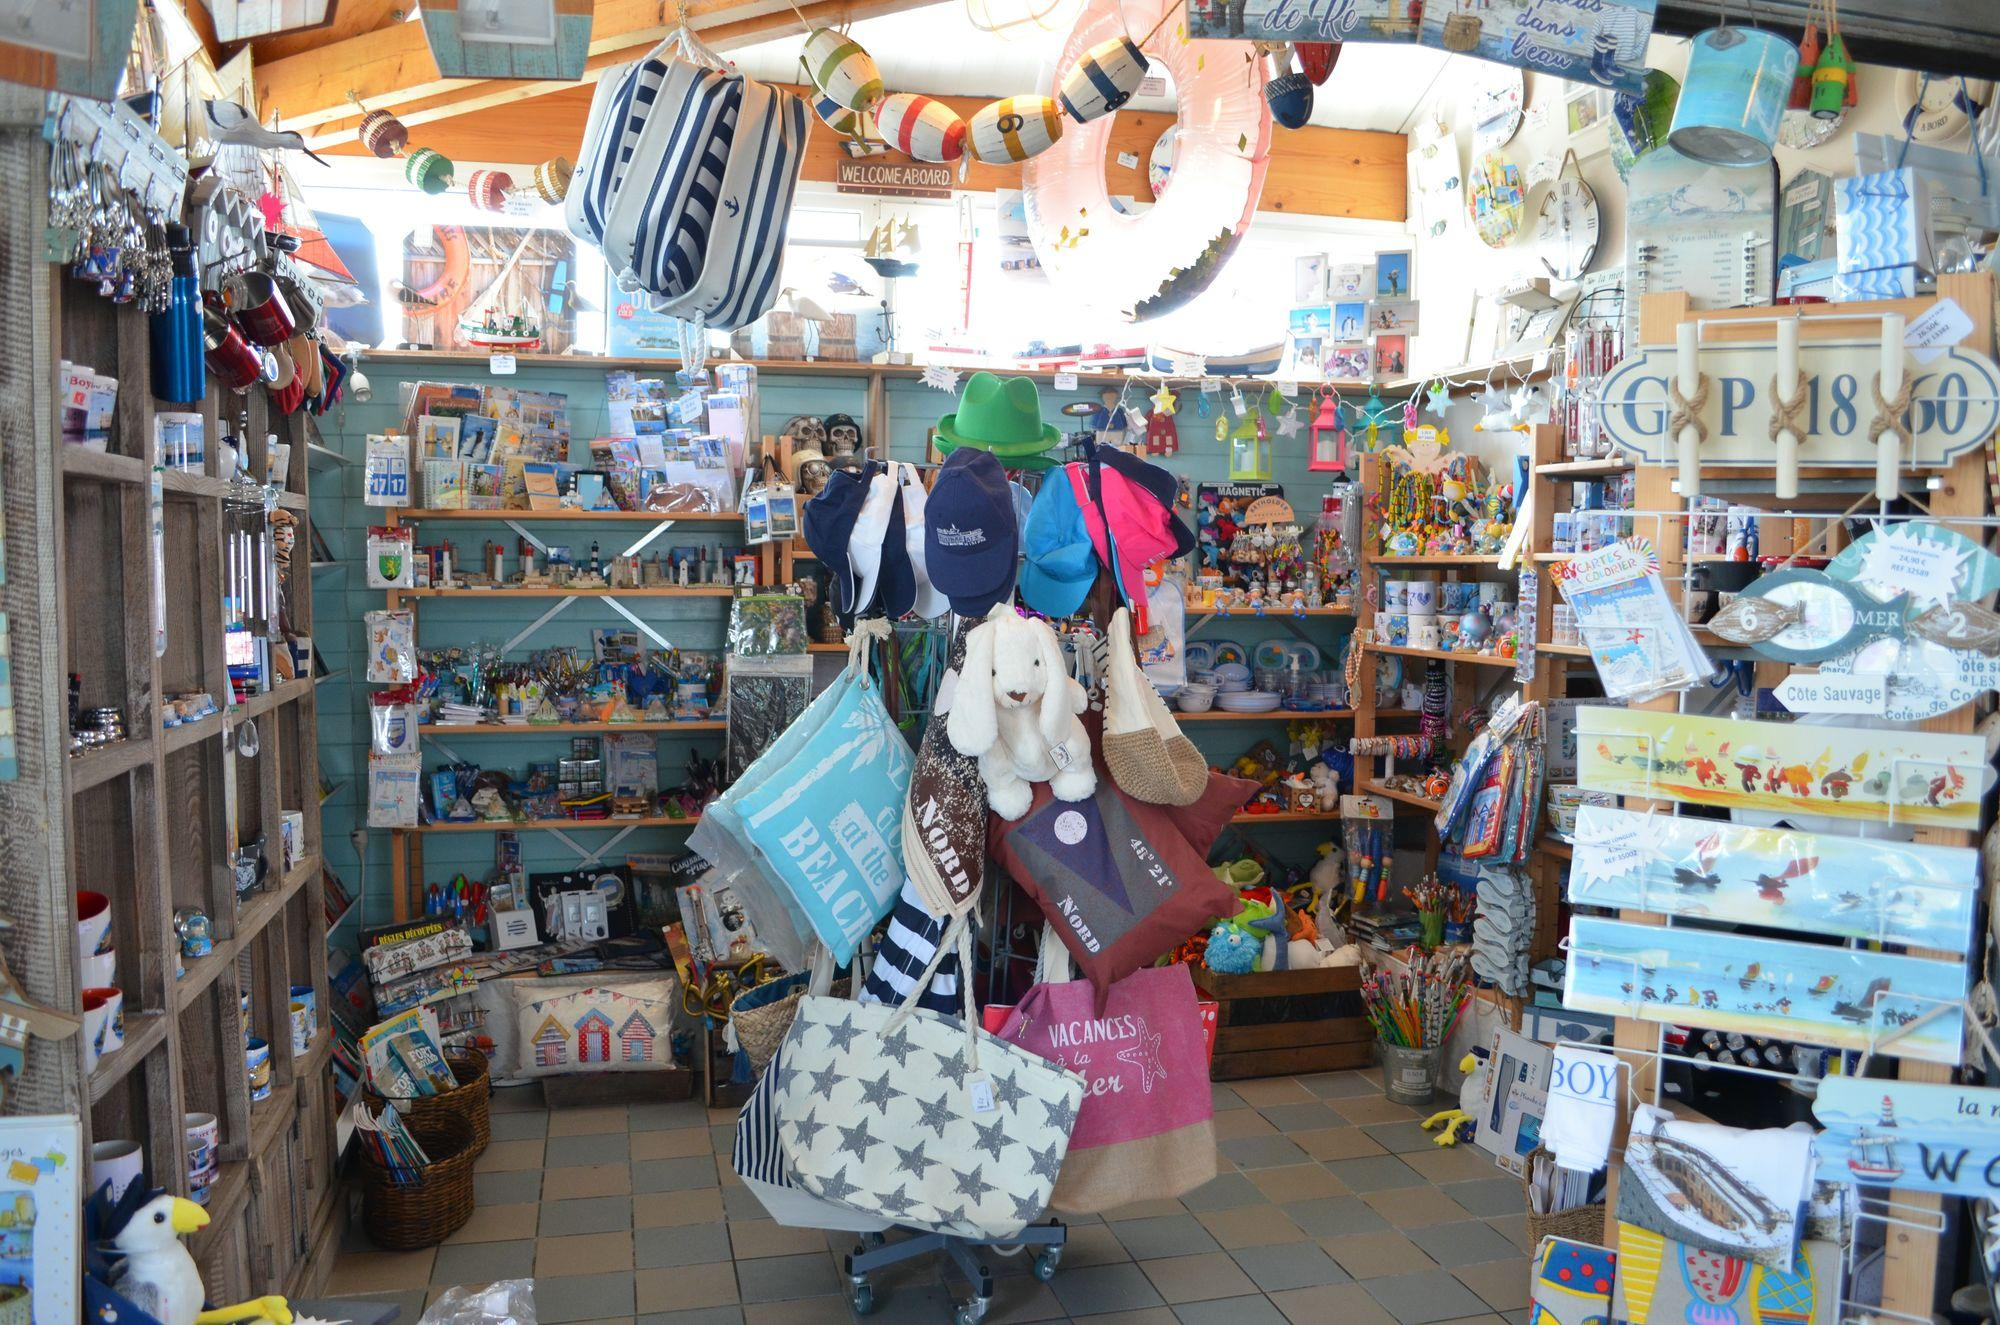 Shop and information center - Service maritime Ile d'Aix : cruises between Fouras and Aix Island